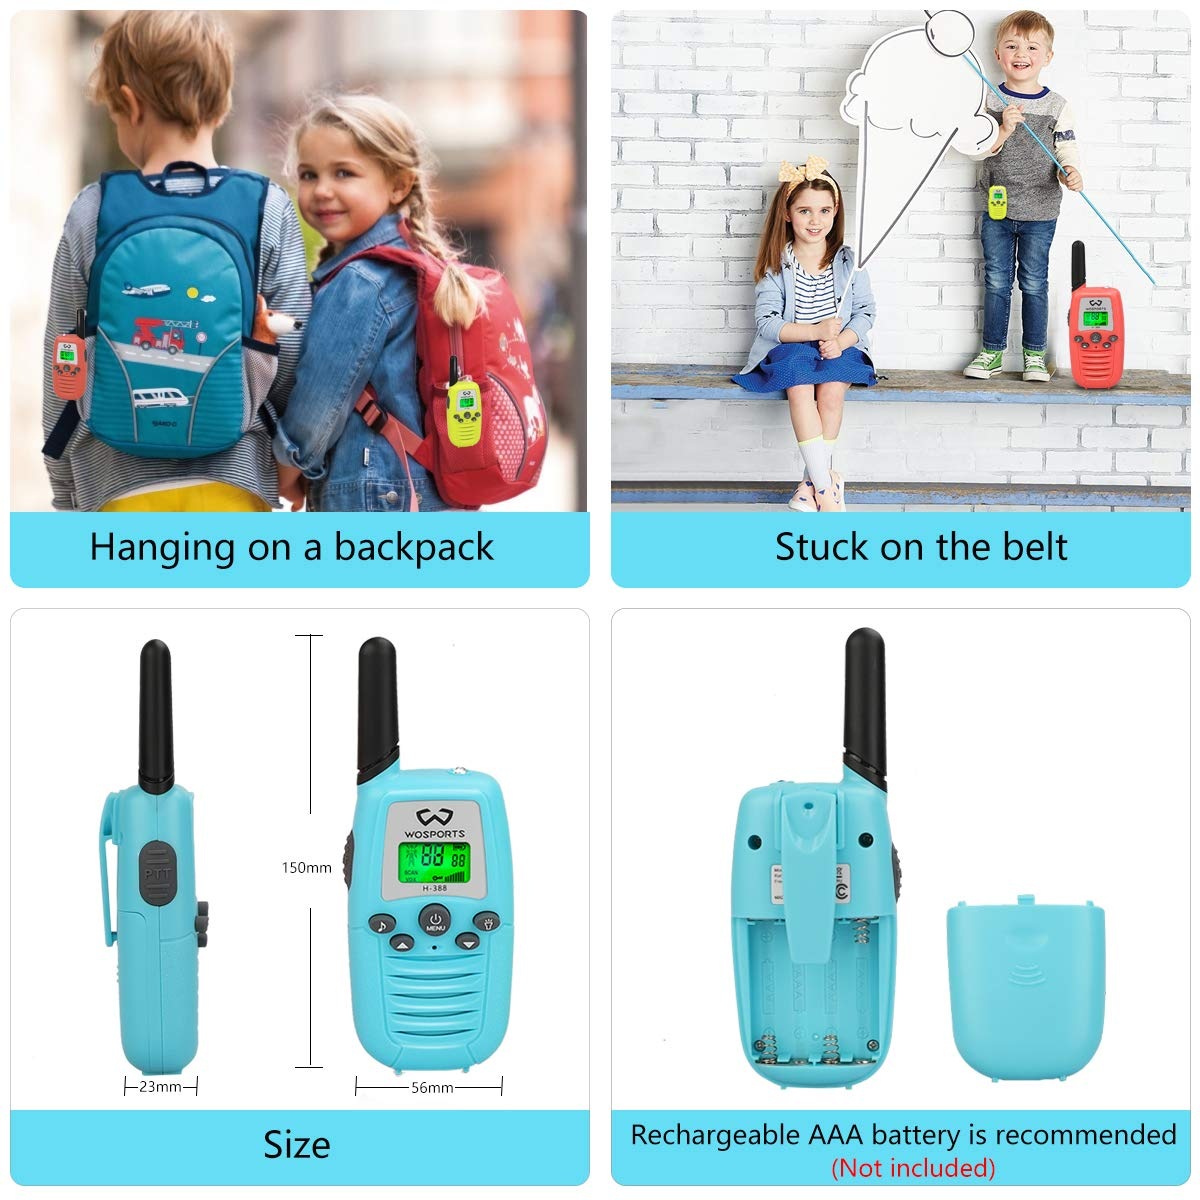 WOSPORTS Kids Walkie Talkies, 3 Pack Two Way Radios with Belt Clip, 3 KM Range Children Toy for Outdoor Adventures Game, Camping, Hiking by WOSPORTS (Image #3)